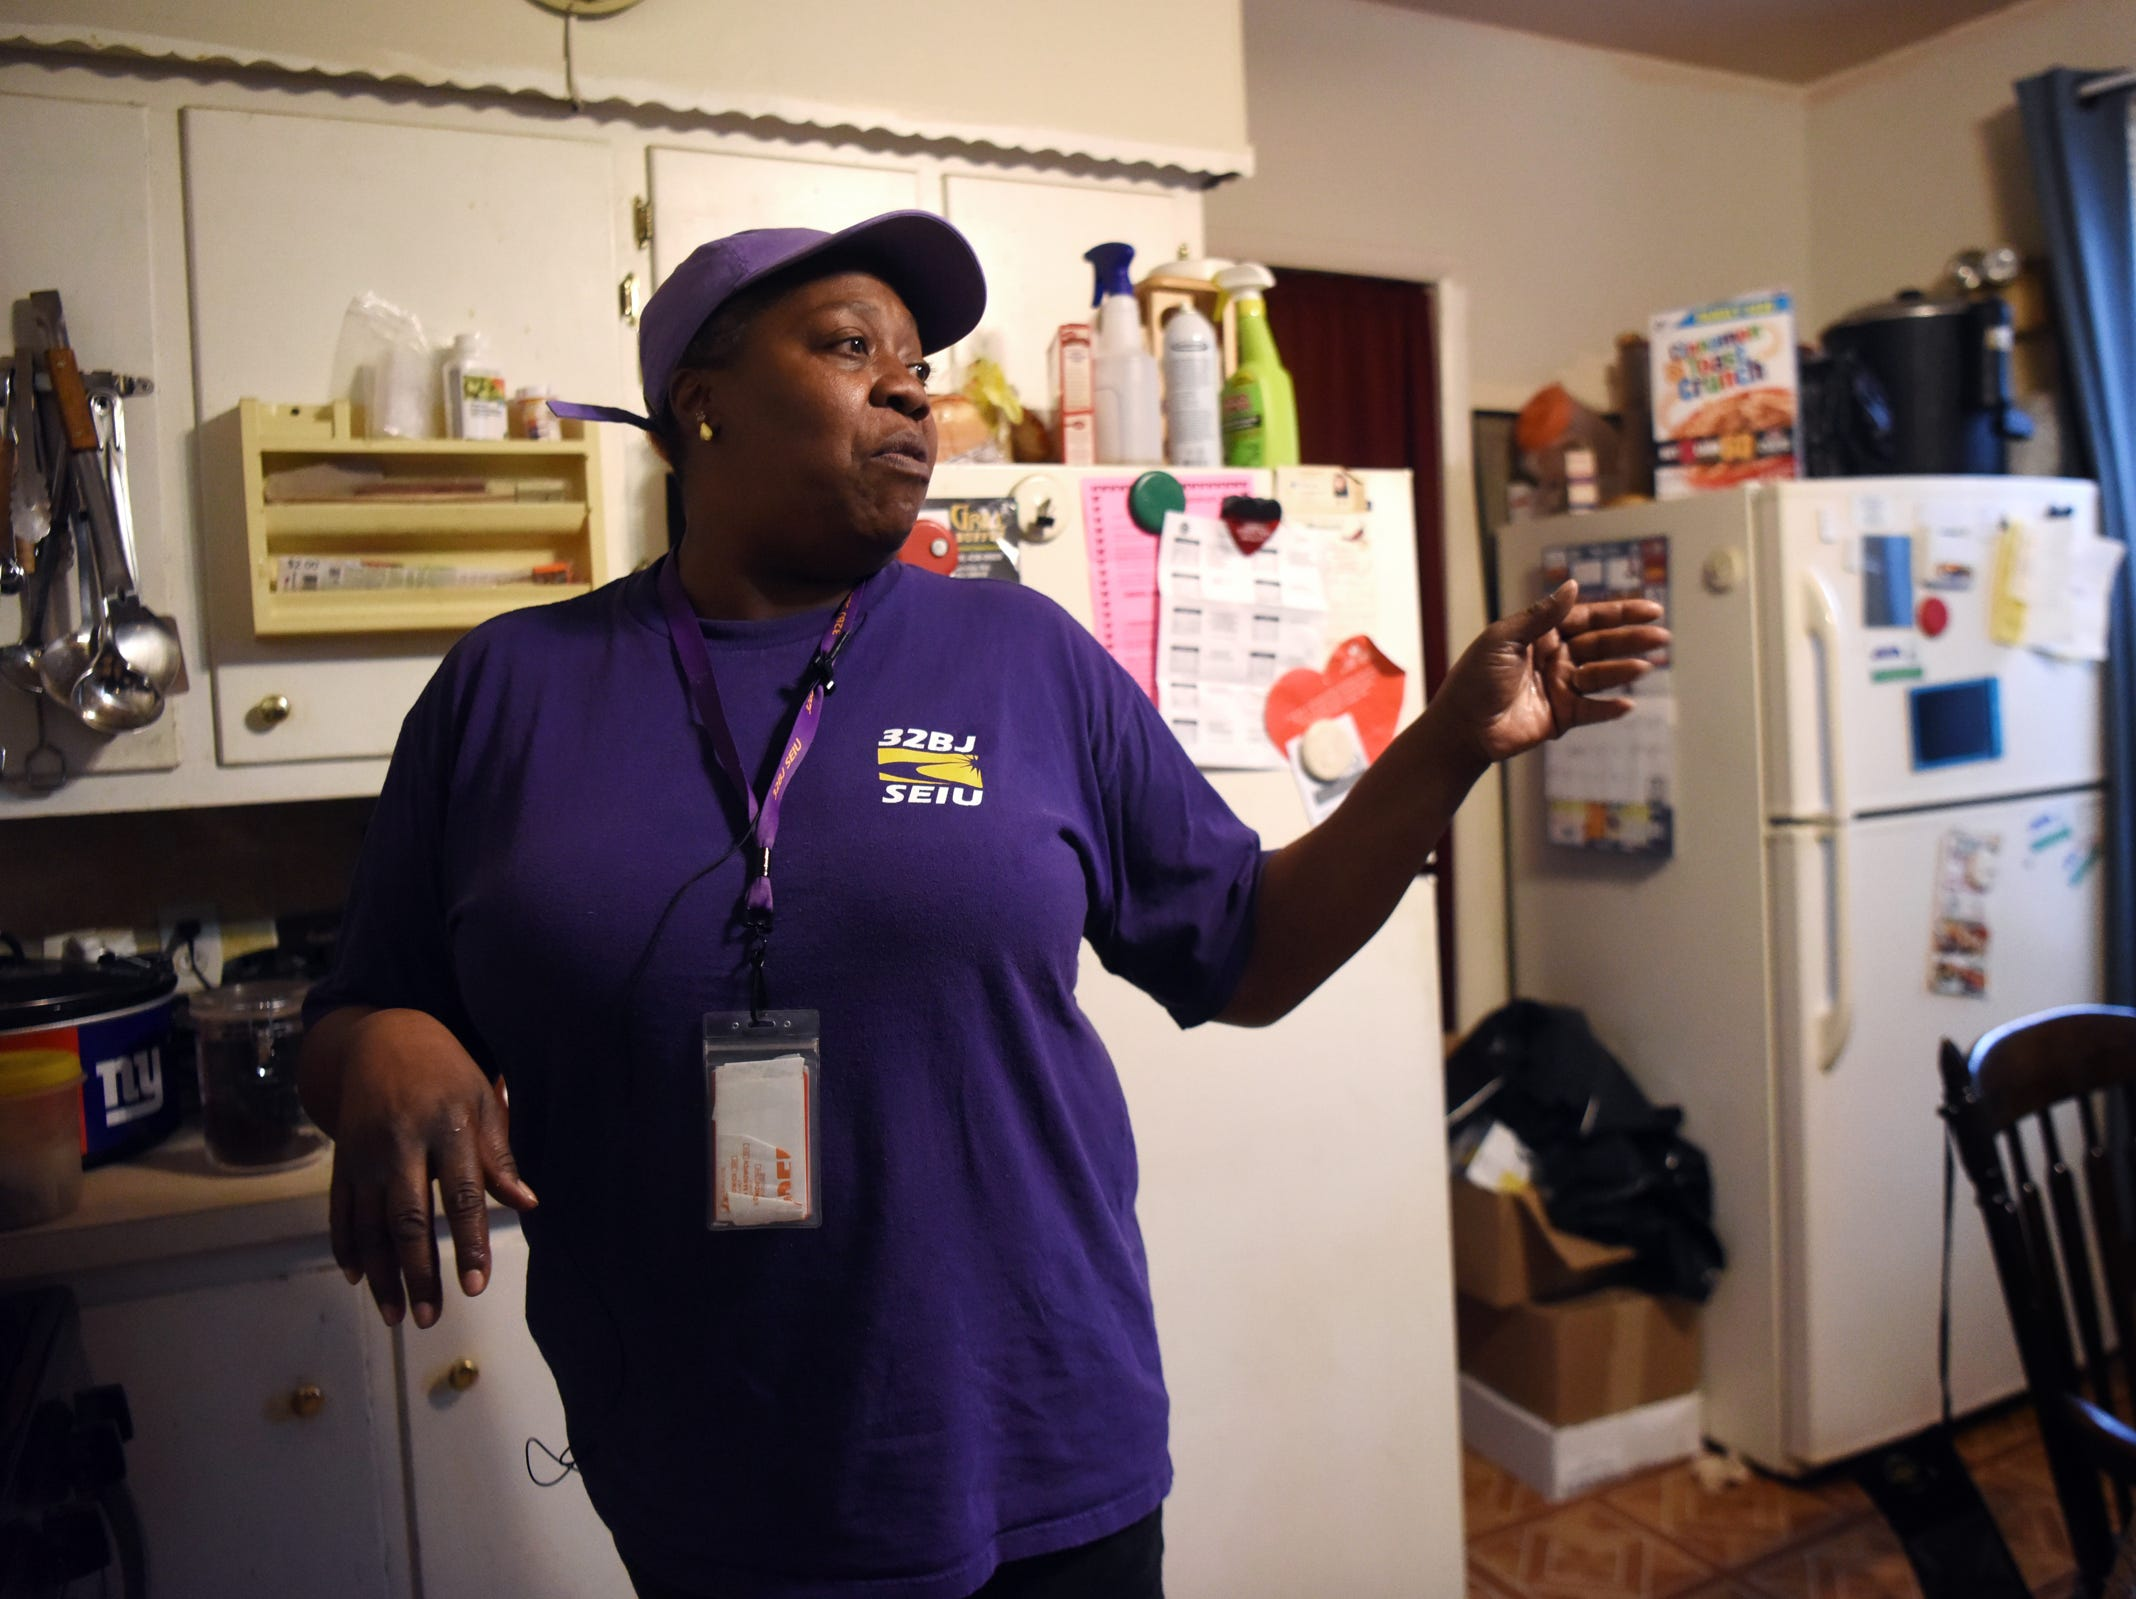 Leslie Hall of Trenton, a food service worker making $11.90 and hour, shops sales and uses her two freezers to store food she buys in bulk when the prices are good.